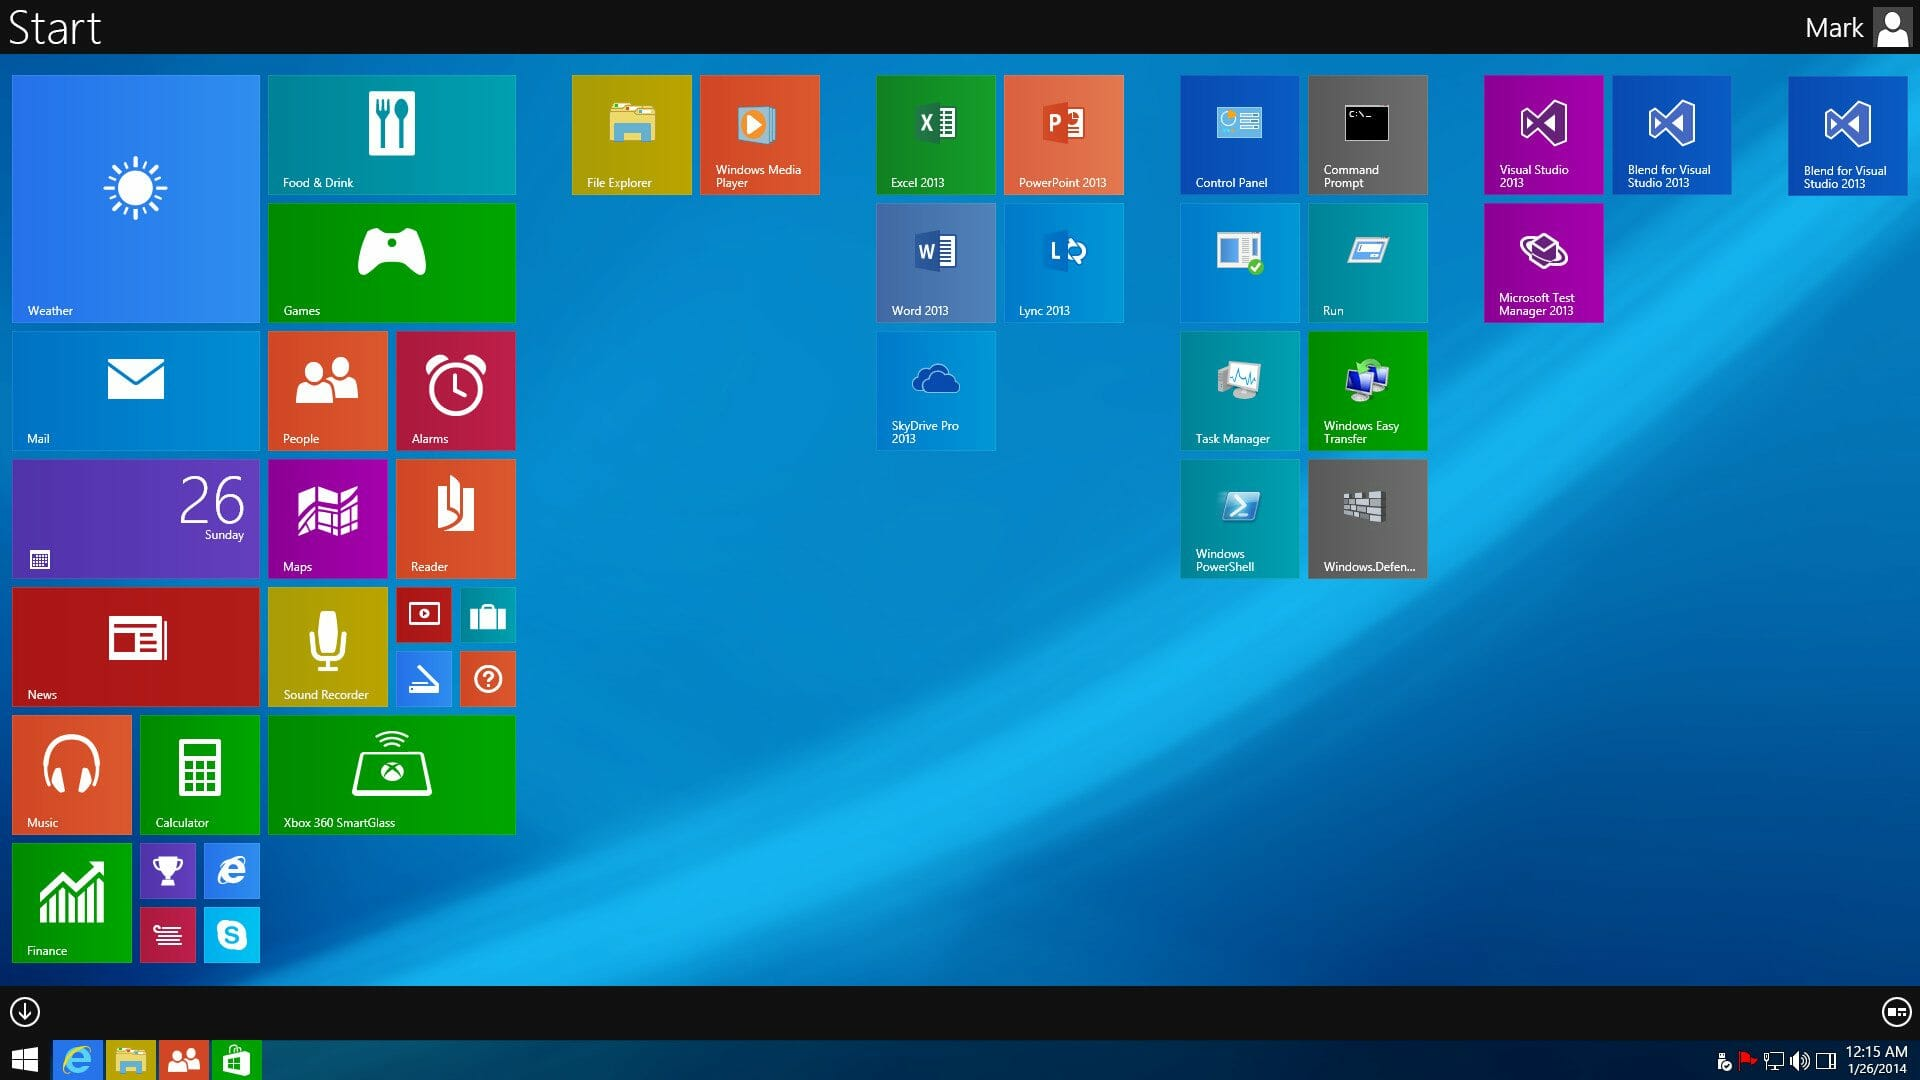 windows 9 concept images leaked shows new start screen